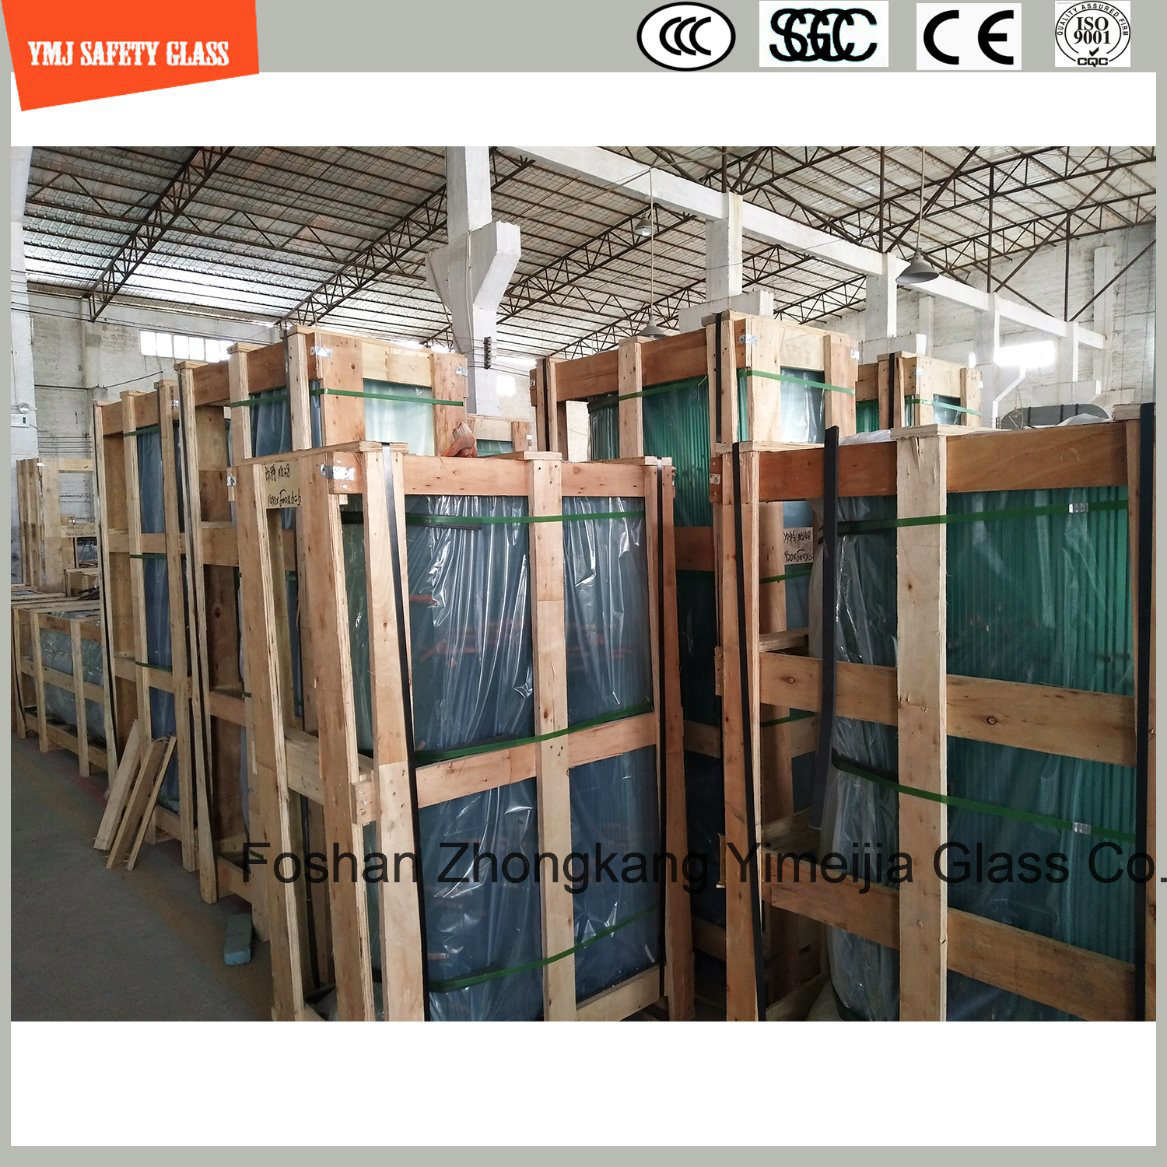 4-19mm Tempered Glass for Hotel, Construction, Shower, Green House